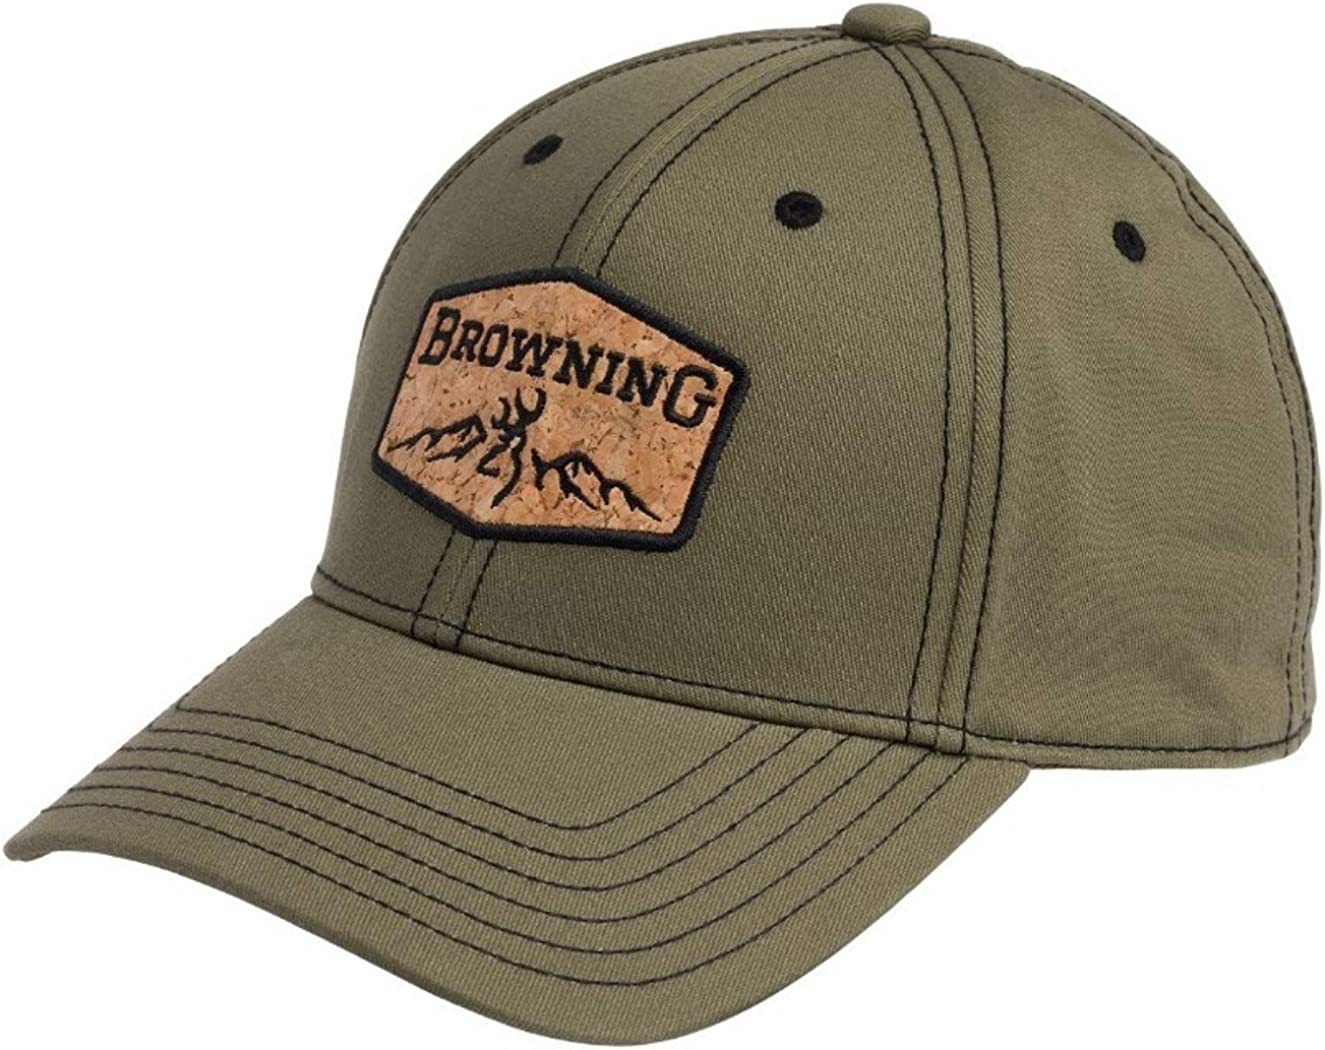 Browning free shipping 308626541 Cap Cork Sale Special Price Tucked Loden